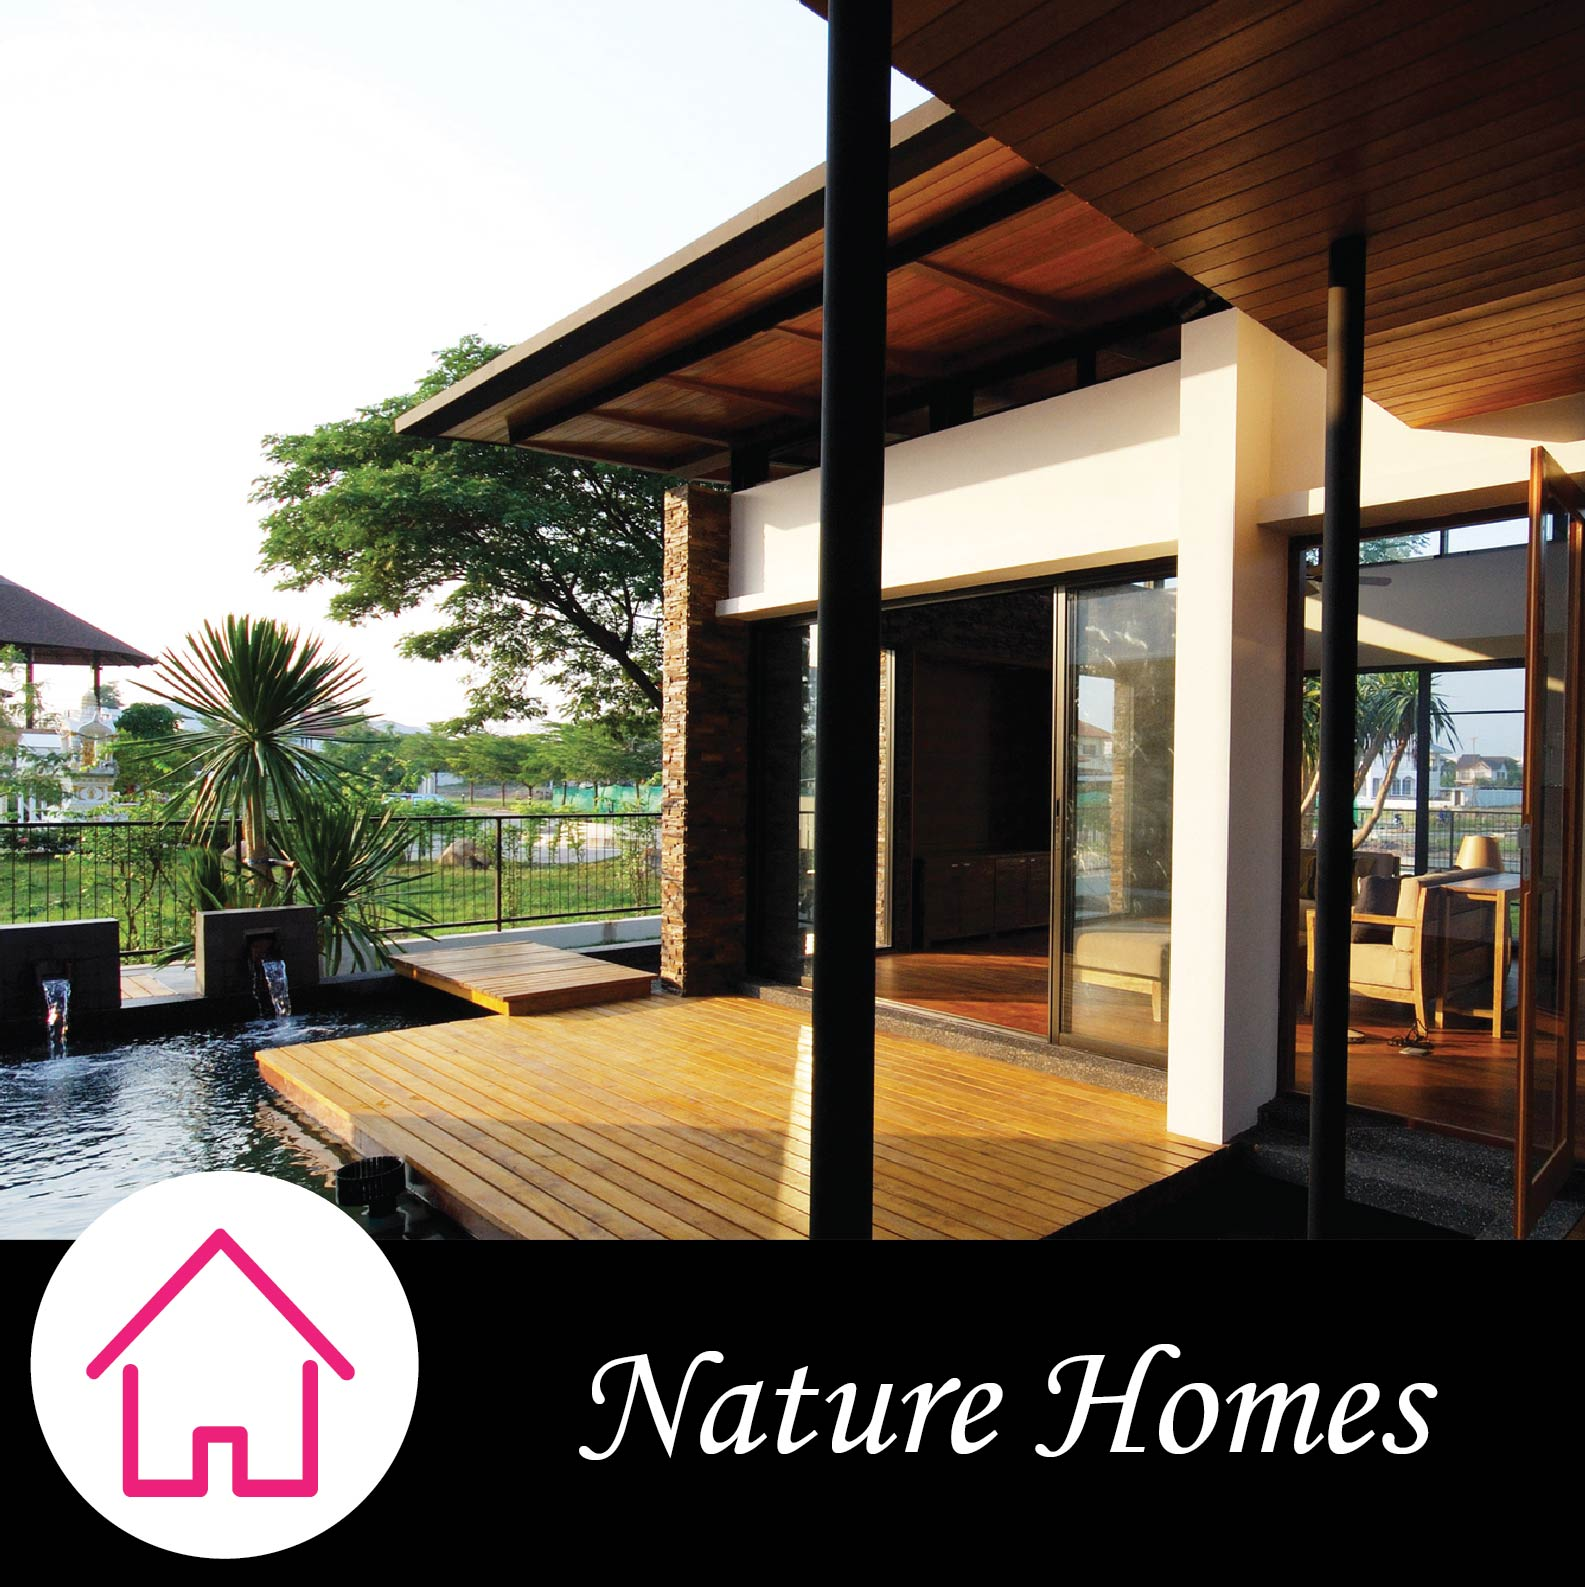 Nature Homes